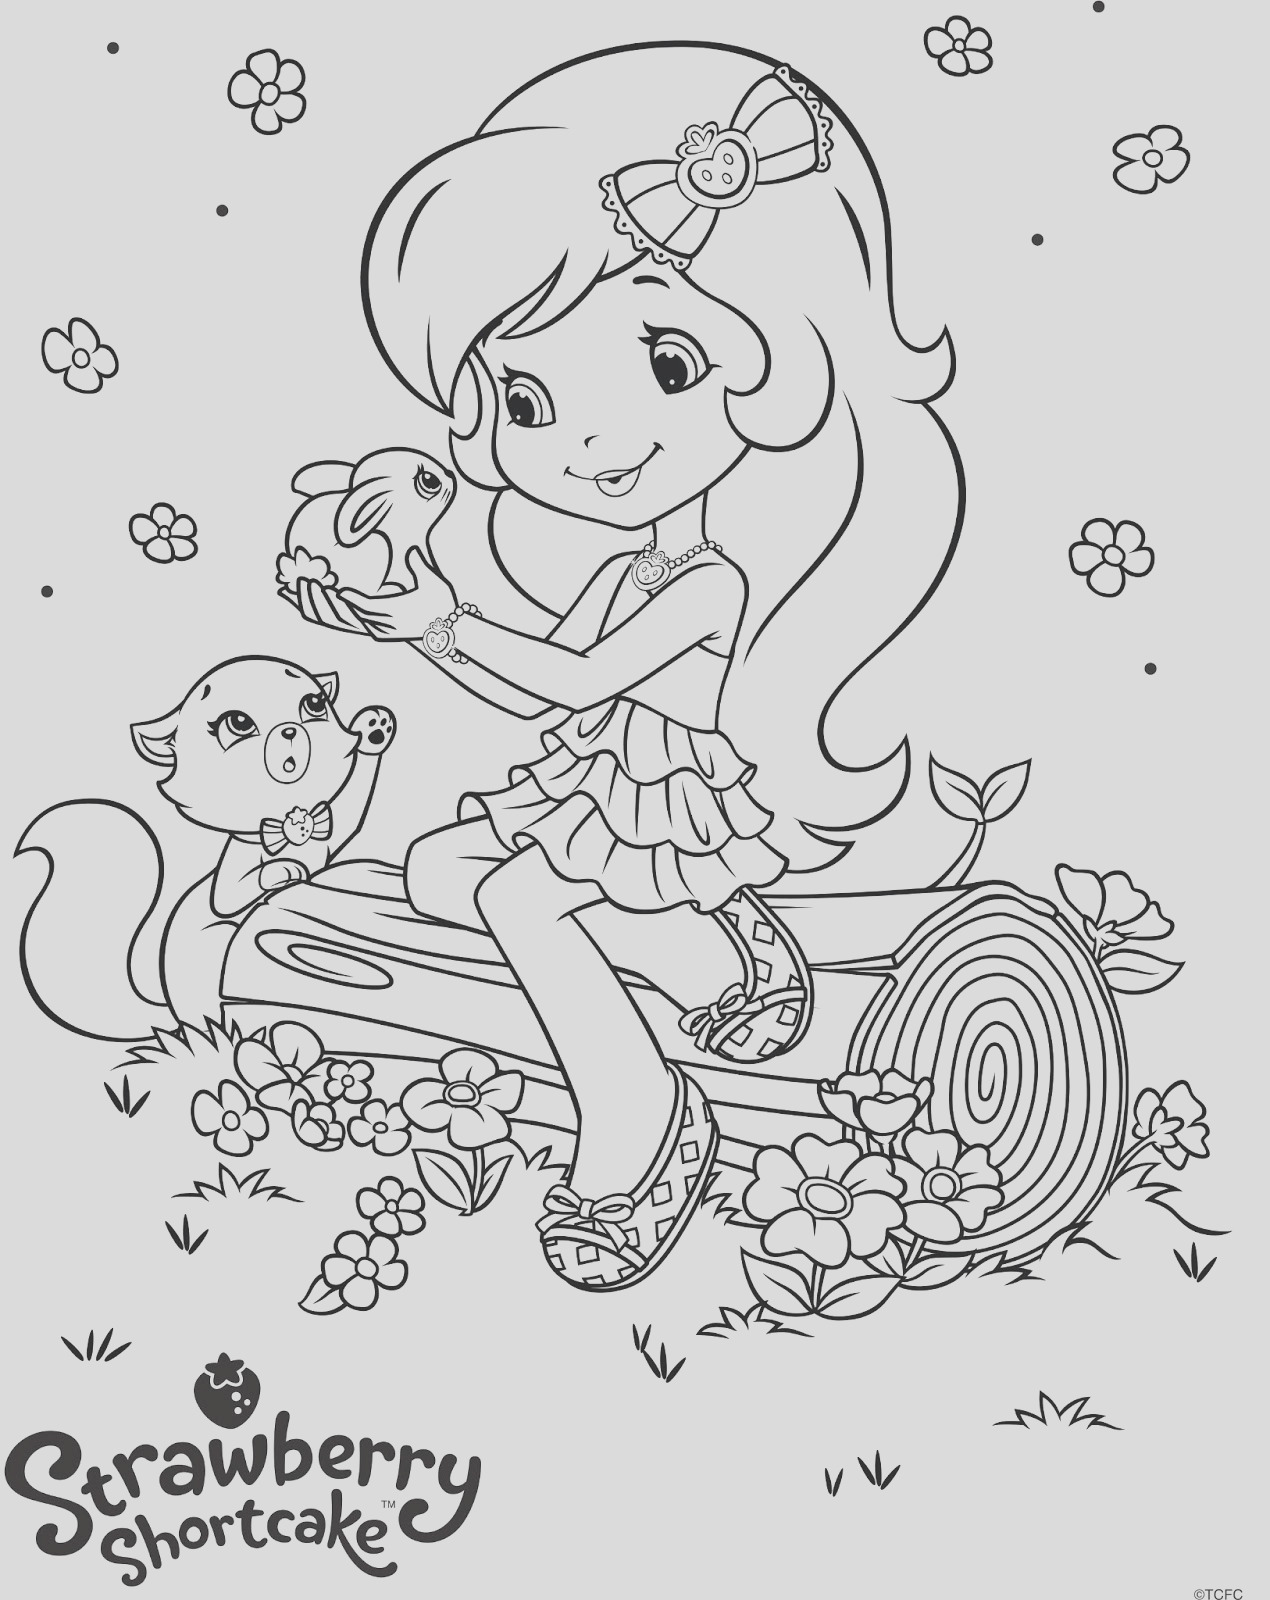 life lessons in animation with strawberryshortcake free coloring pages 20thcenturyfox foxhomeent hubtvnetwork